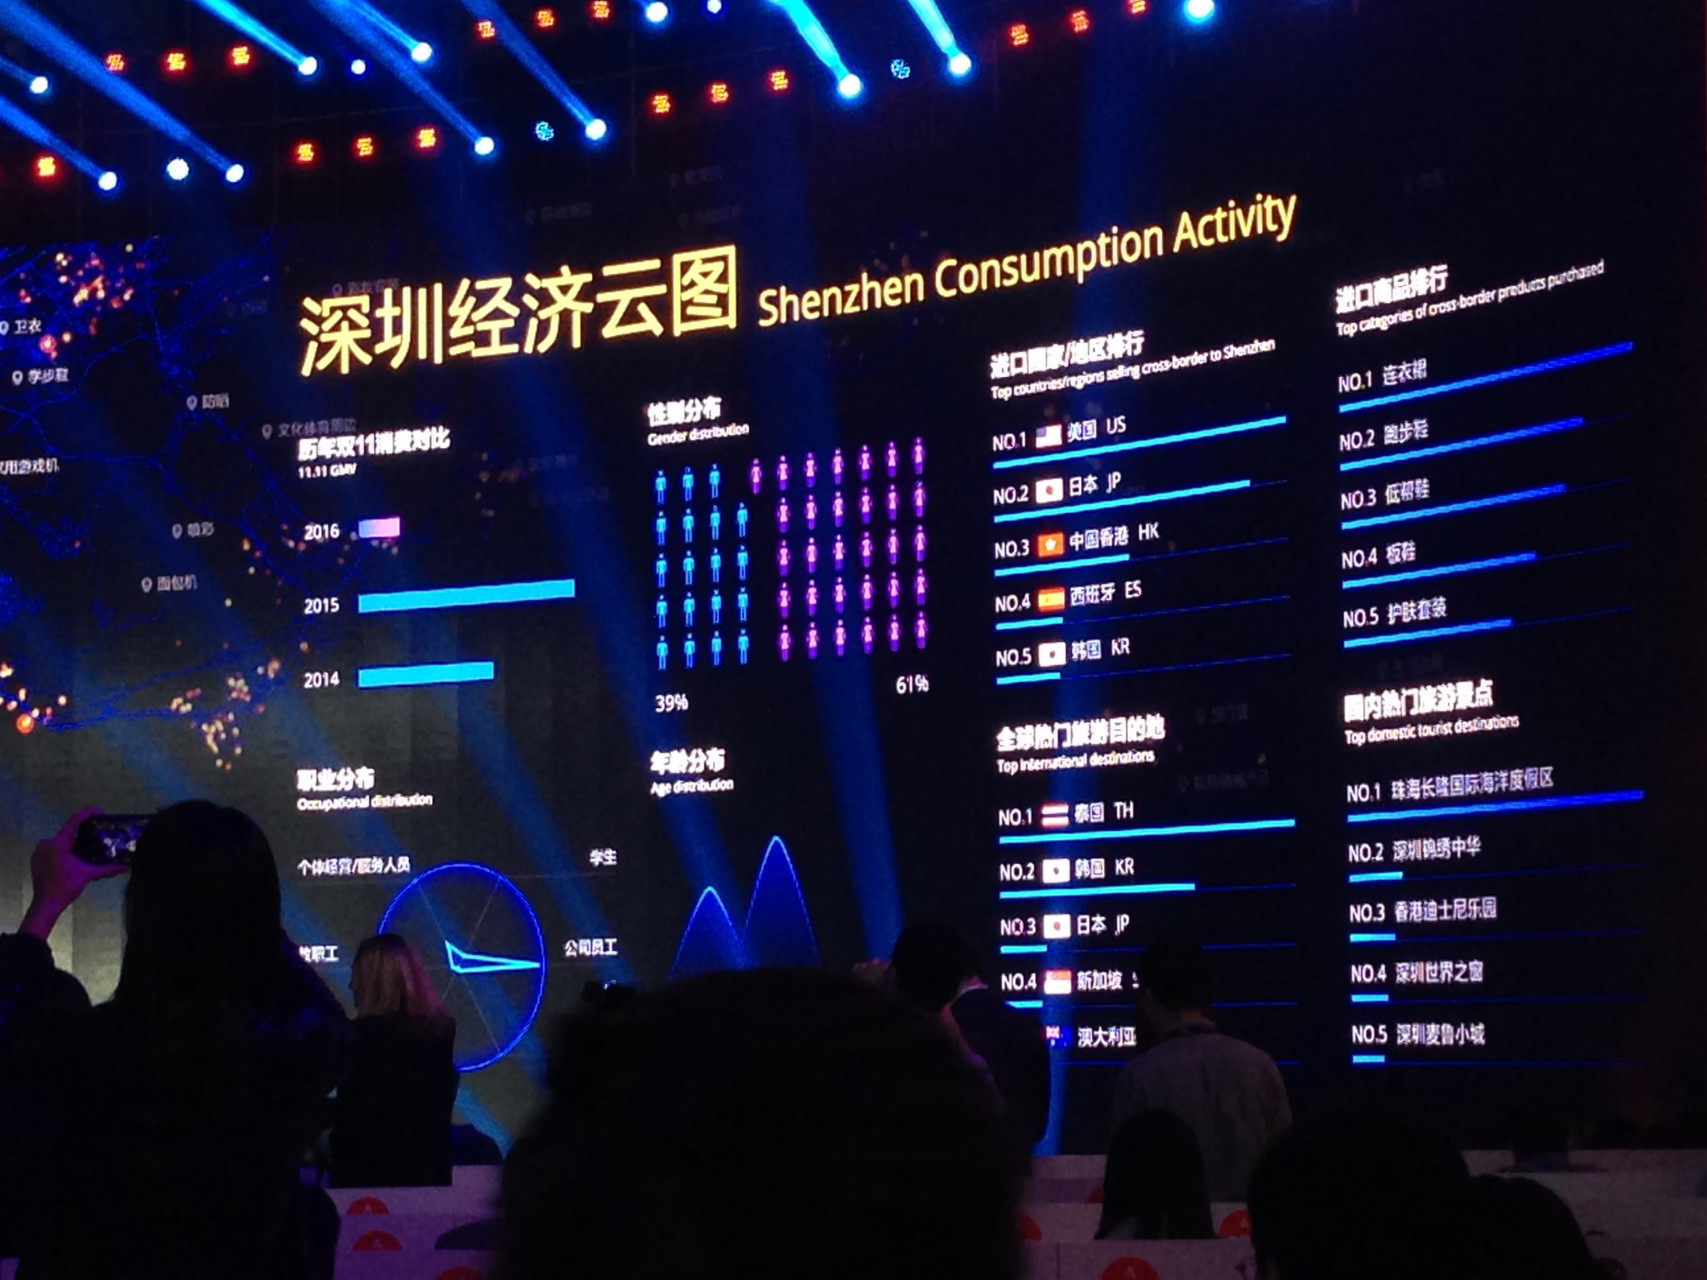 Data visualization on Alibaba global shopping day (Image Credit: TechNode)